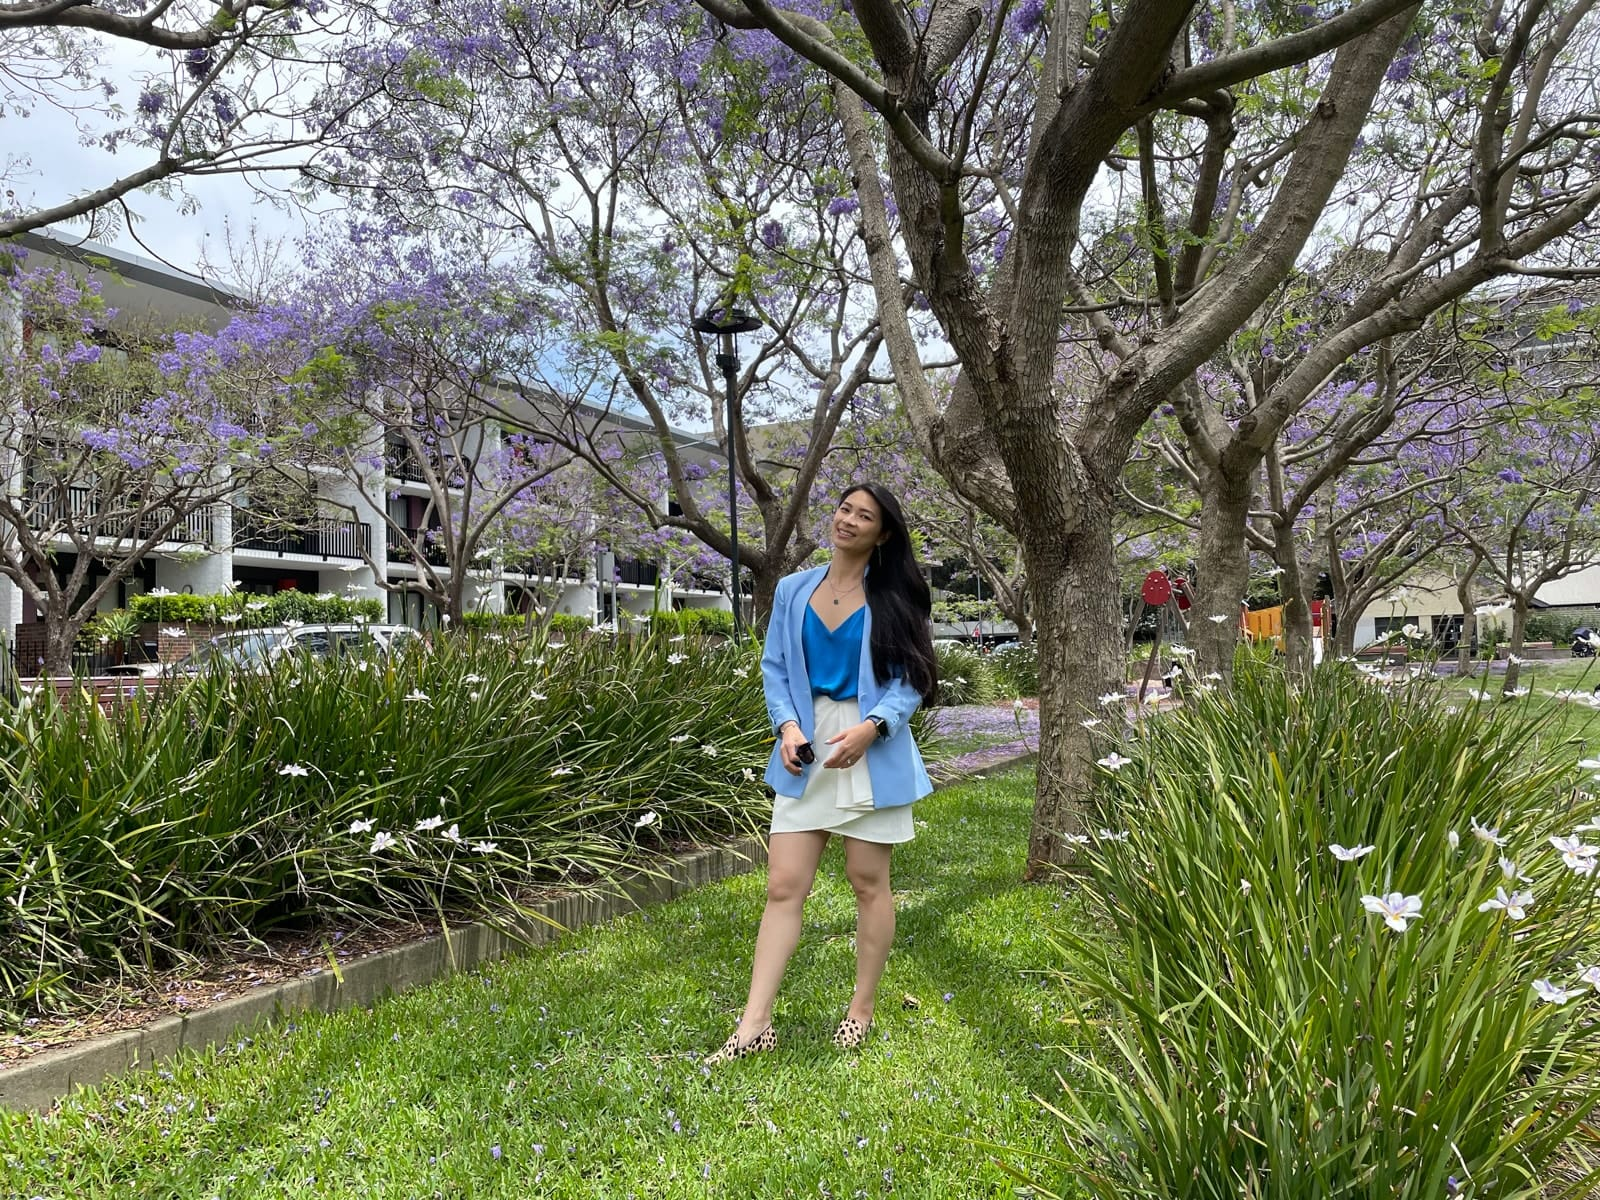 A woman with long dark hair, wearing a blue blazer over a blue top and white skirt, standing in a lush green park with jacaranda trees. She has loafers with a giraffe animal print